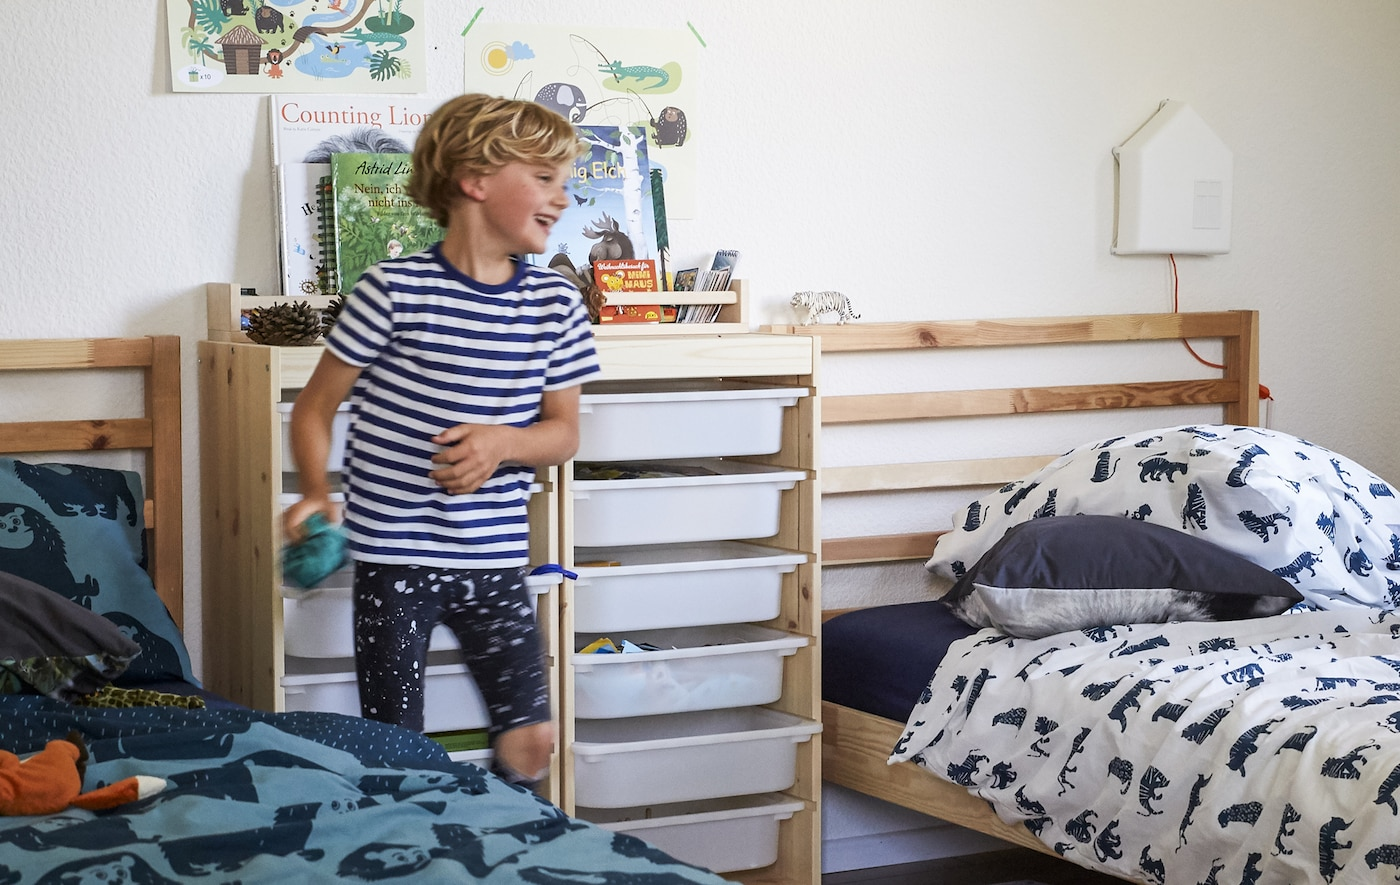 Two boys in a children's bedroom with two beds side by side, wooden storage and patterned textiles.